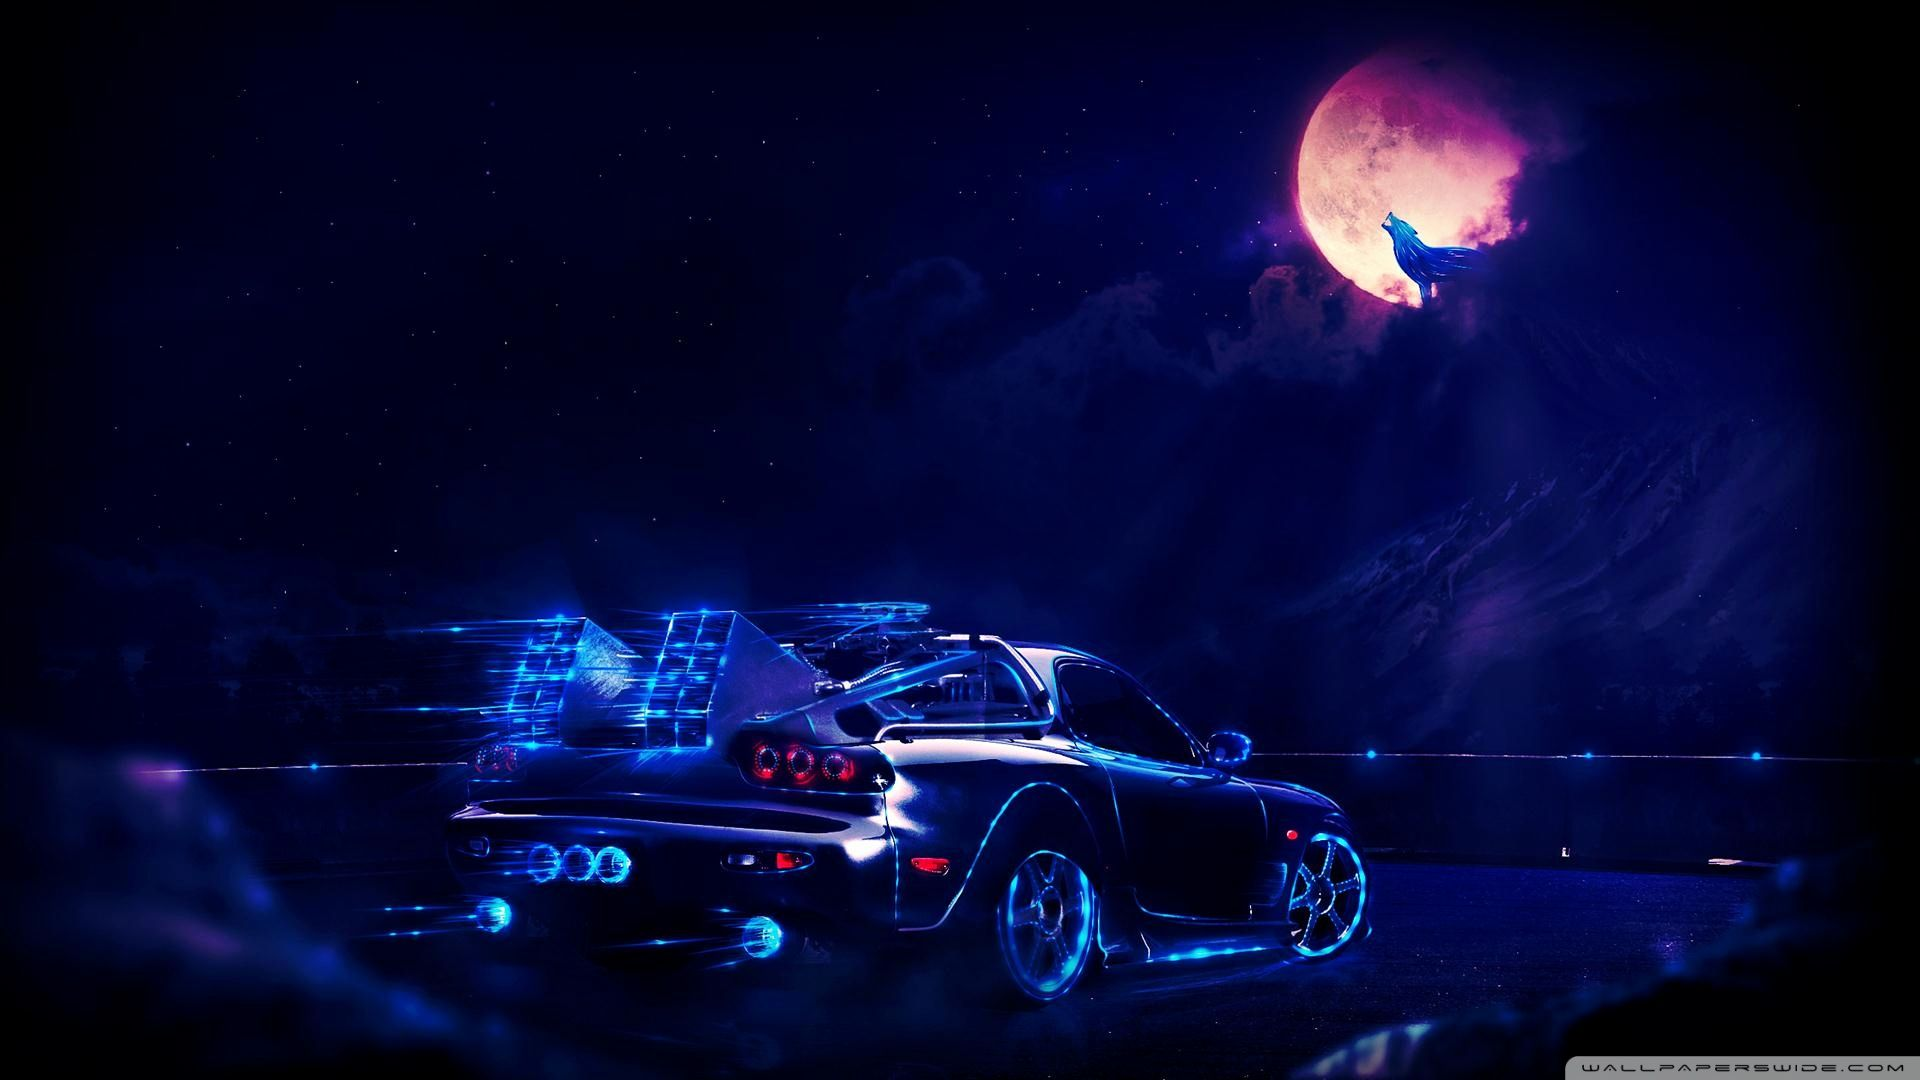 Cool Neon Cars Wallpapers Top Free Cool Neon Cars Backgrounds Wallpaperaccess